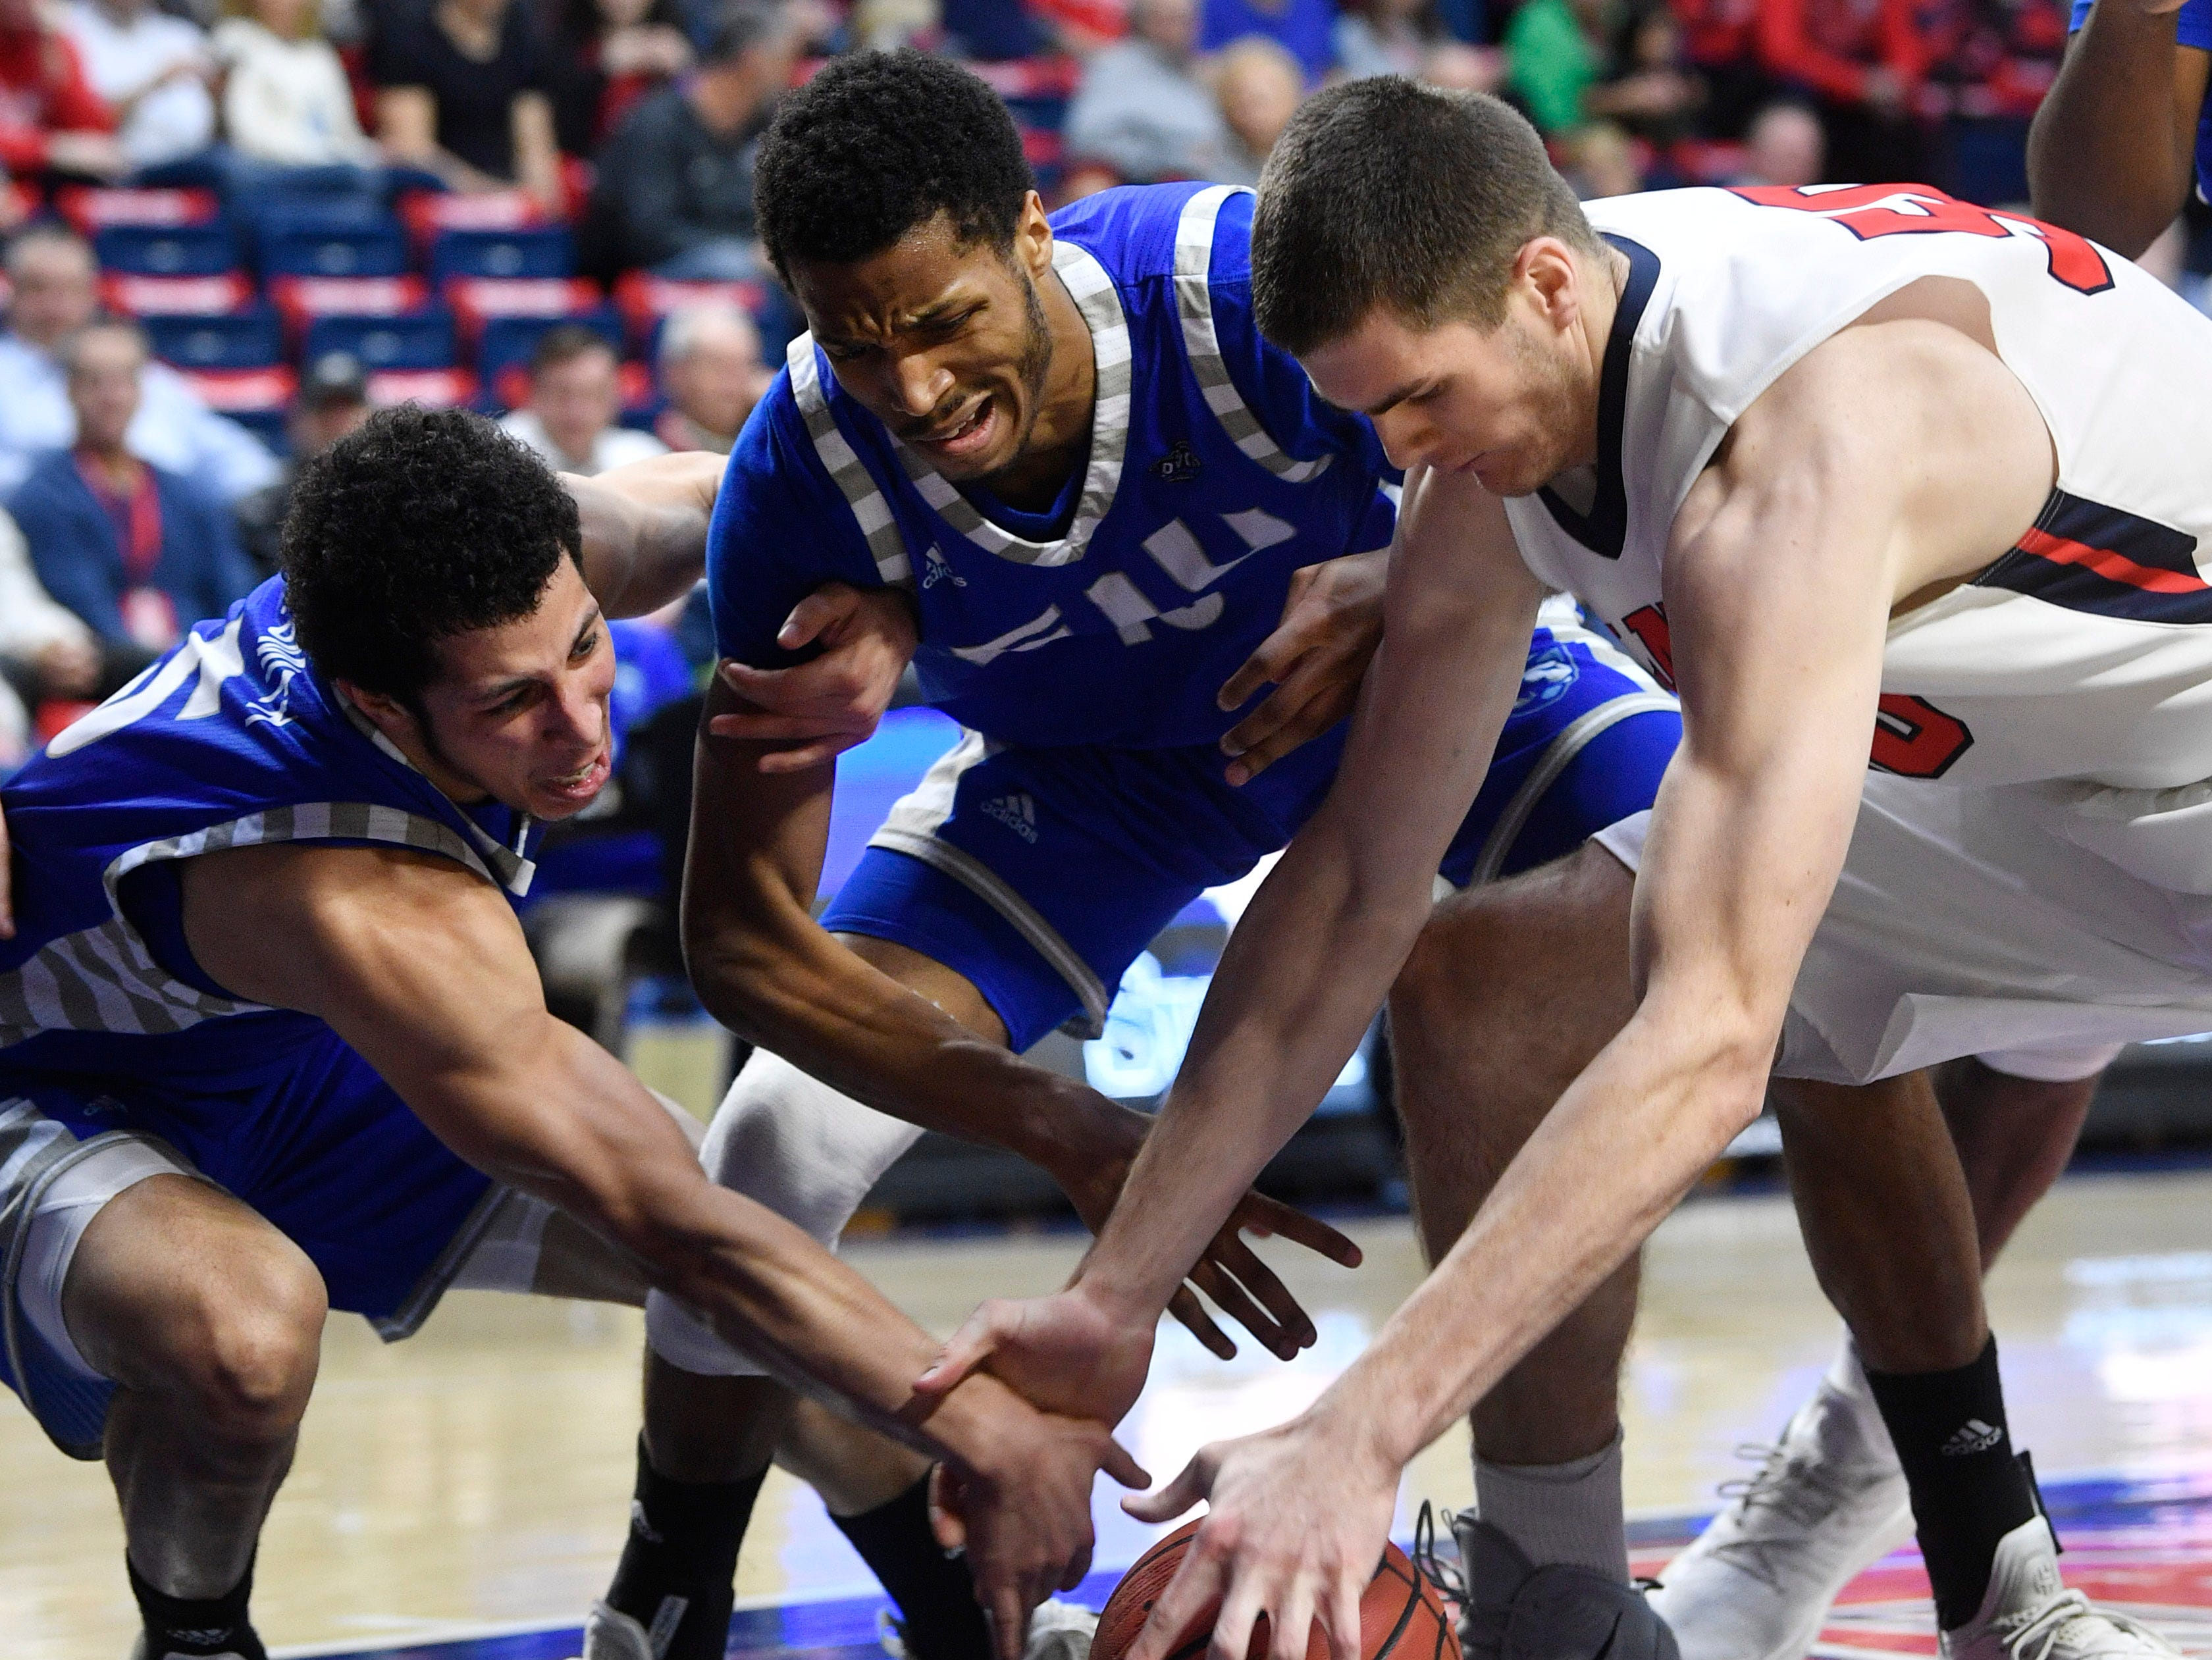 Seth Adelsperger fights for a loose ball as Belmont plays Eastern Illinois in Curb Event Center Thursday, Feb. 21, 2019, in Nashville, Tenn. Flood stage is 40 feet.